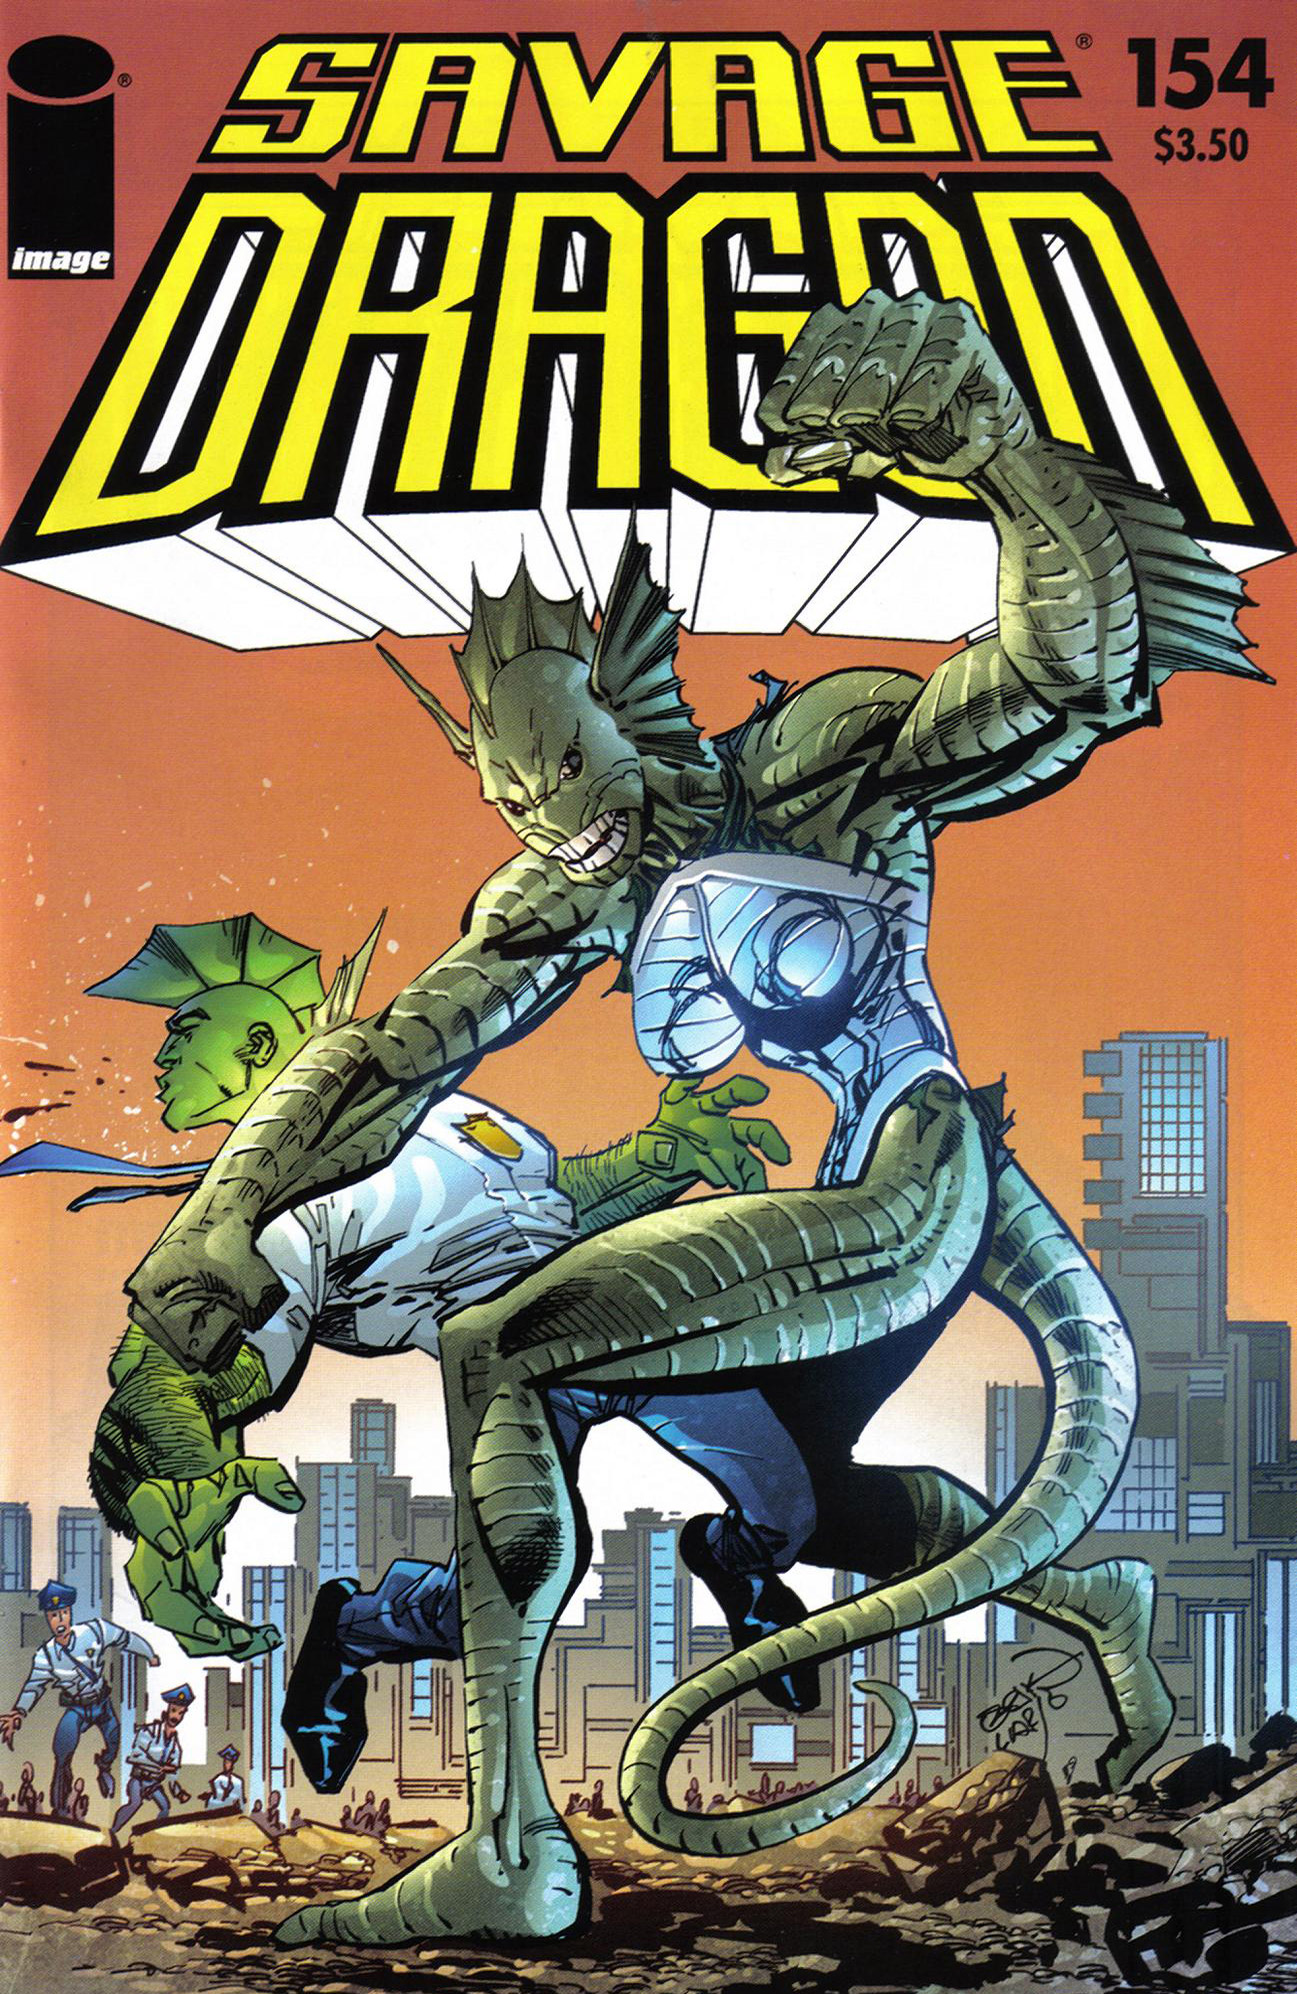 Cover Savage Dragon Vol.2 #154